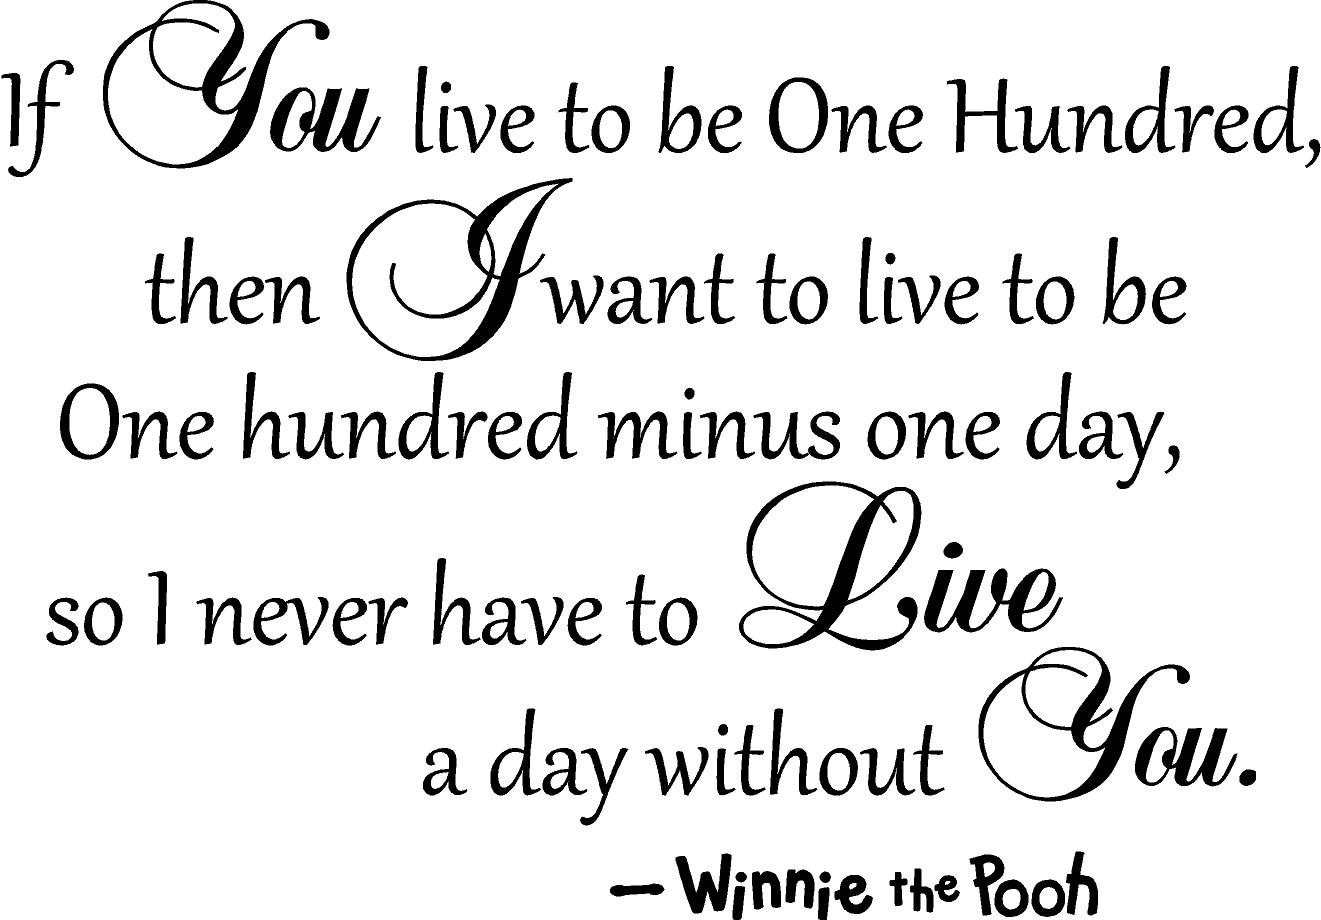 Pooh Quotes About Friendship Winnie The Pooh If You Live To Be One Hundred I Want To Live